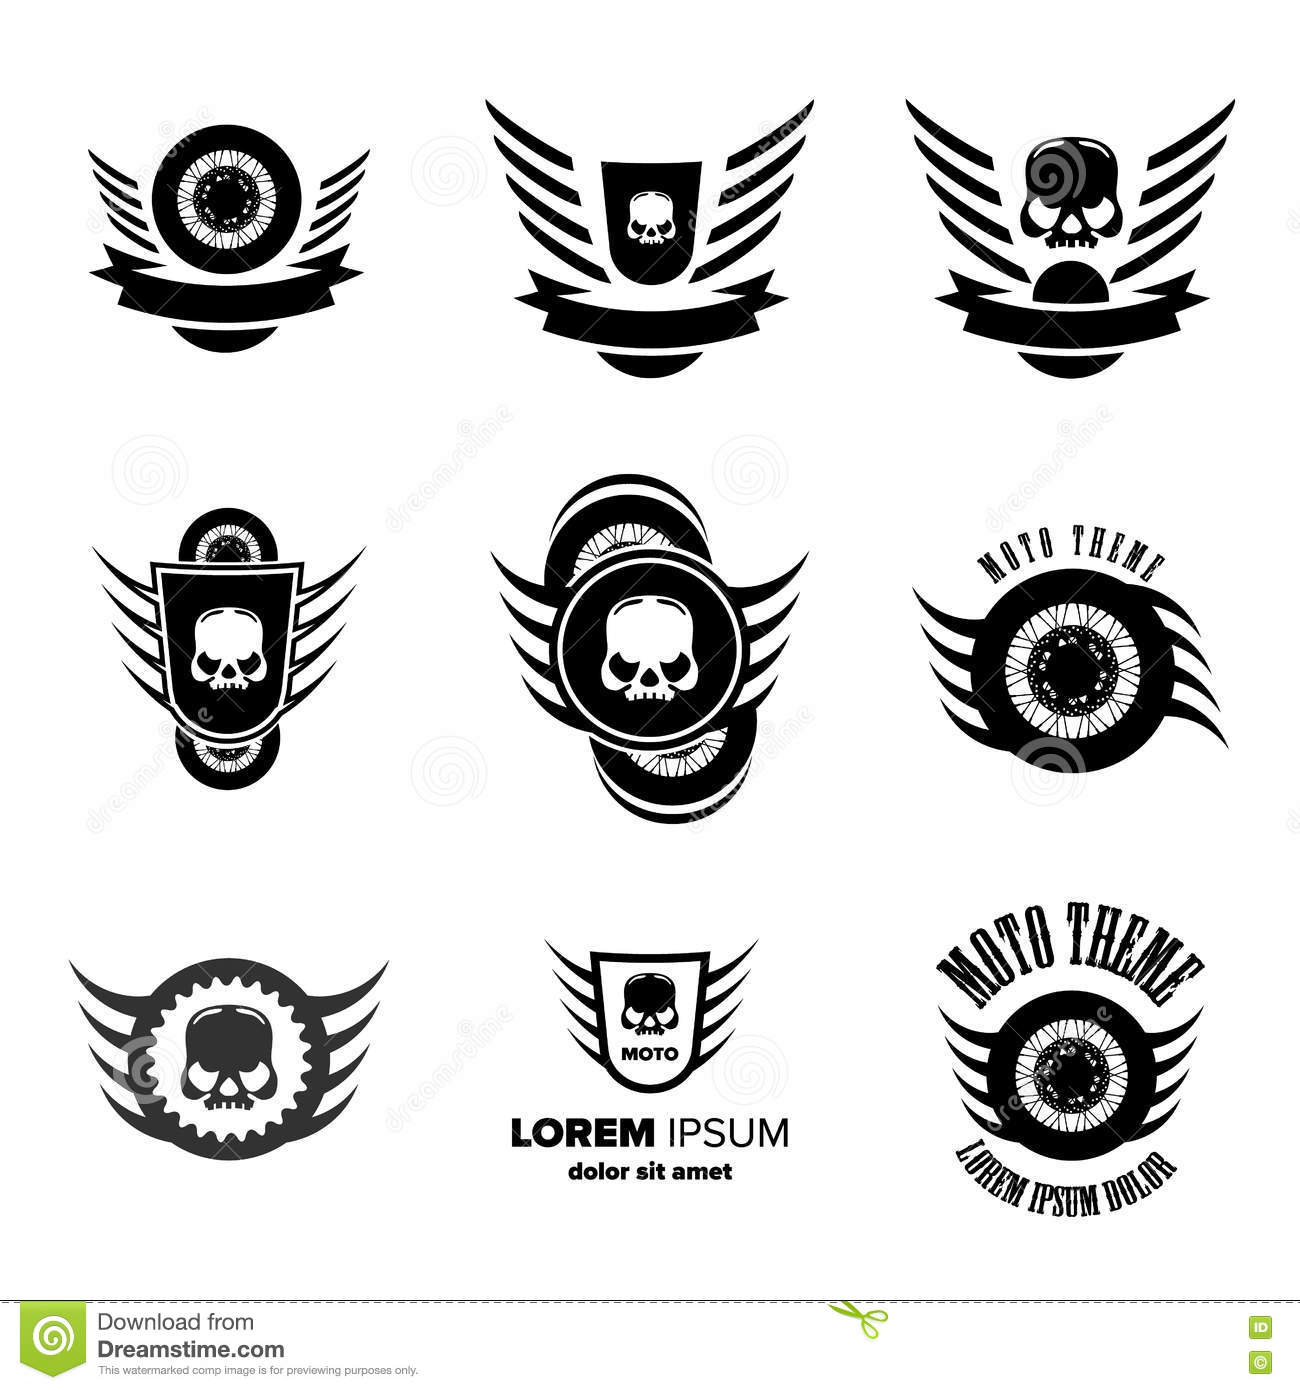 Moto Wheel Vector Logo Symbols Stock Vector